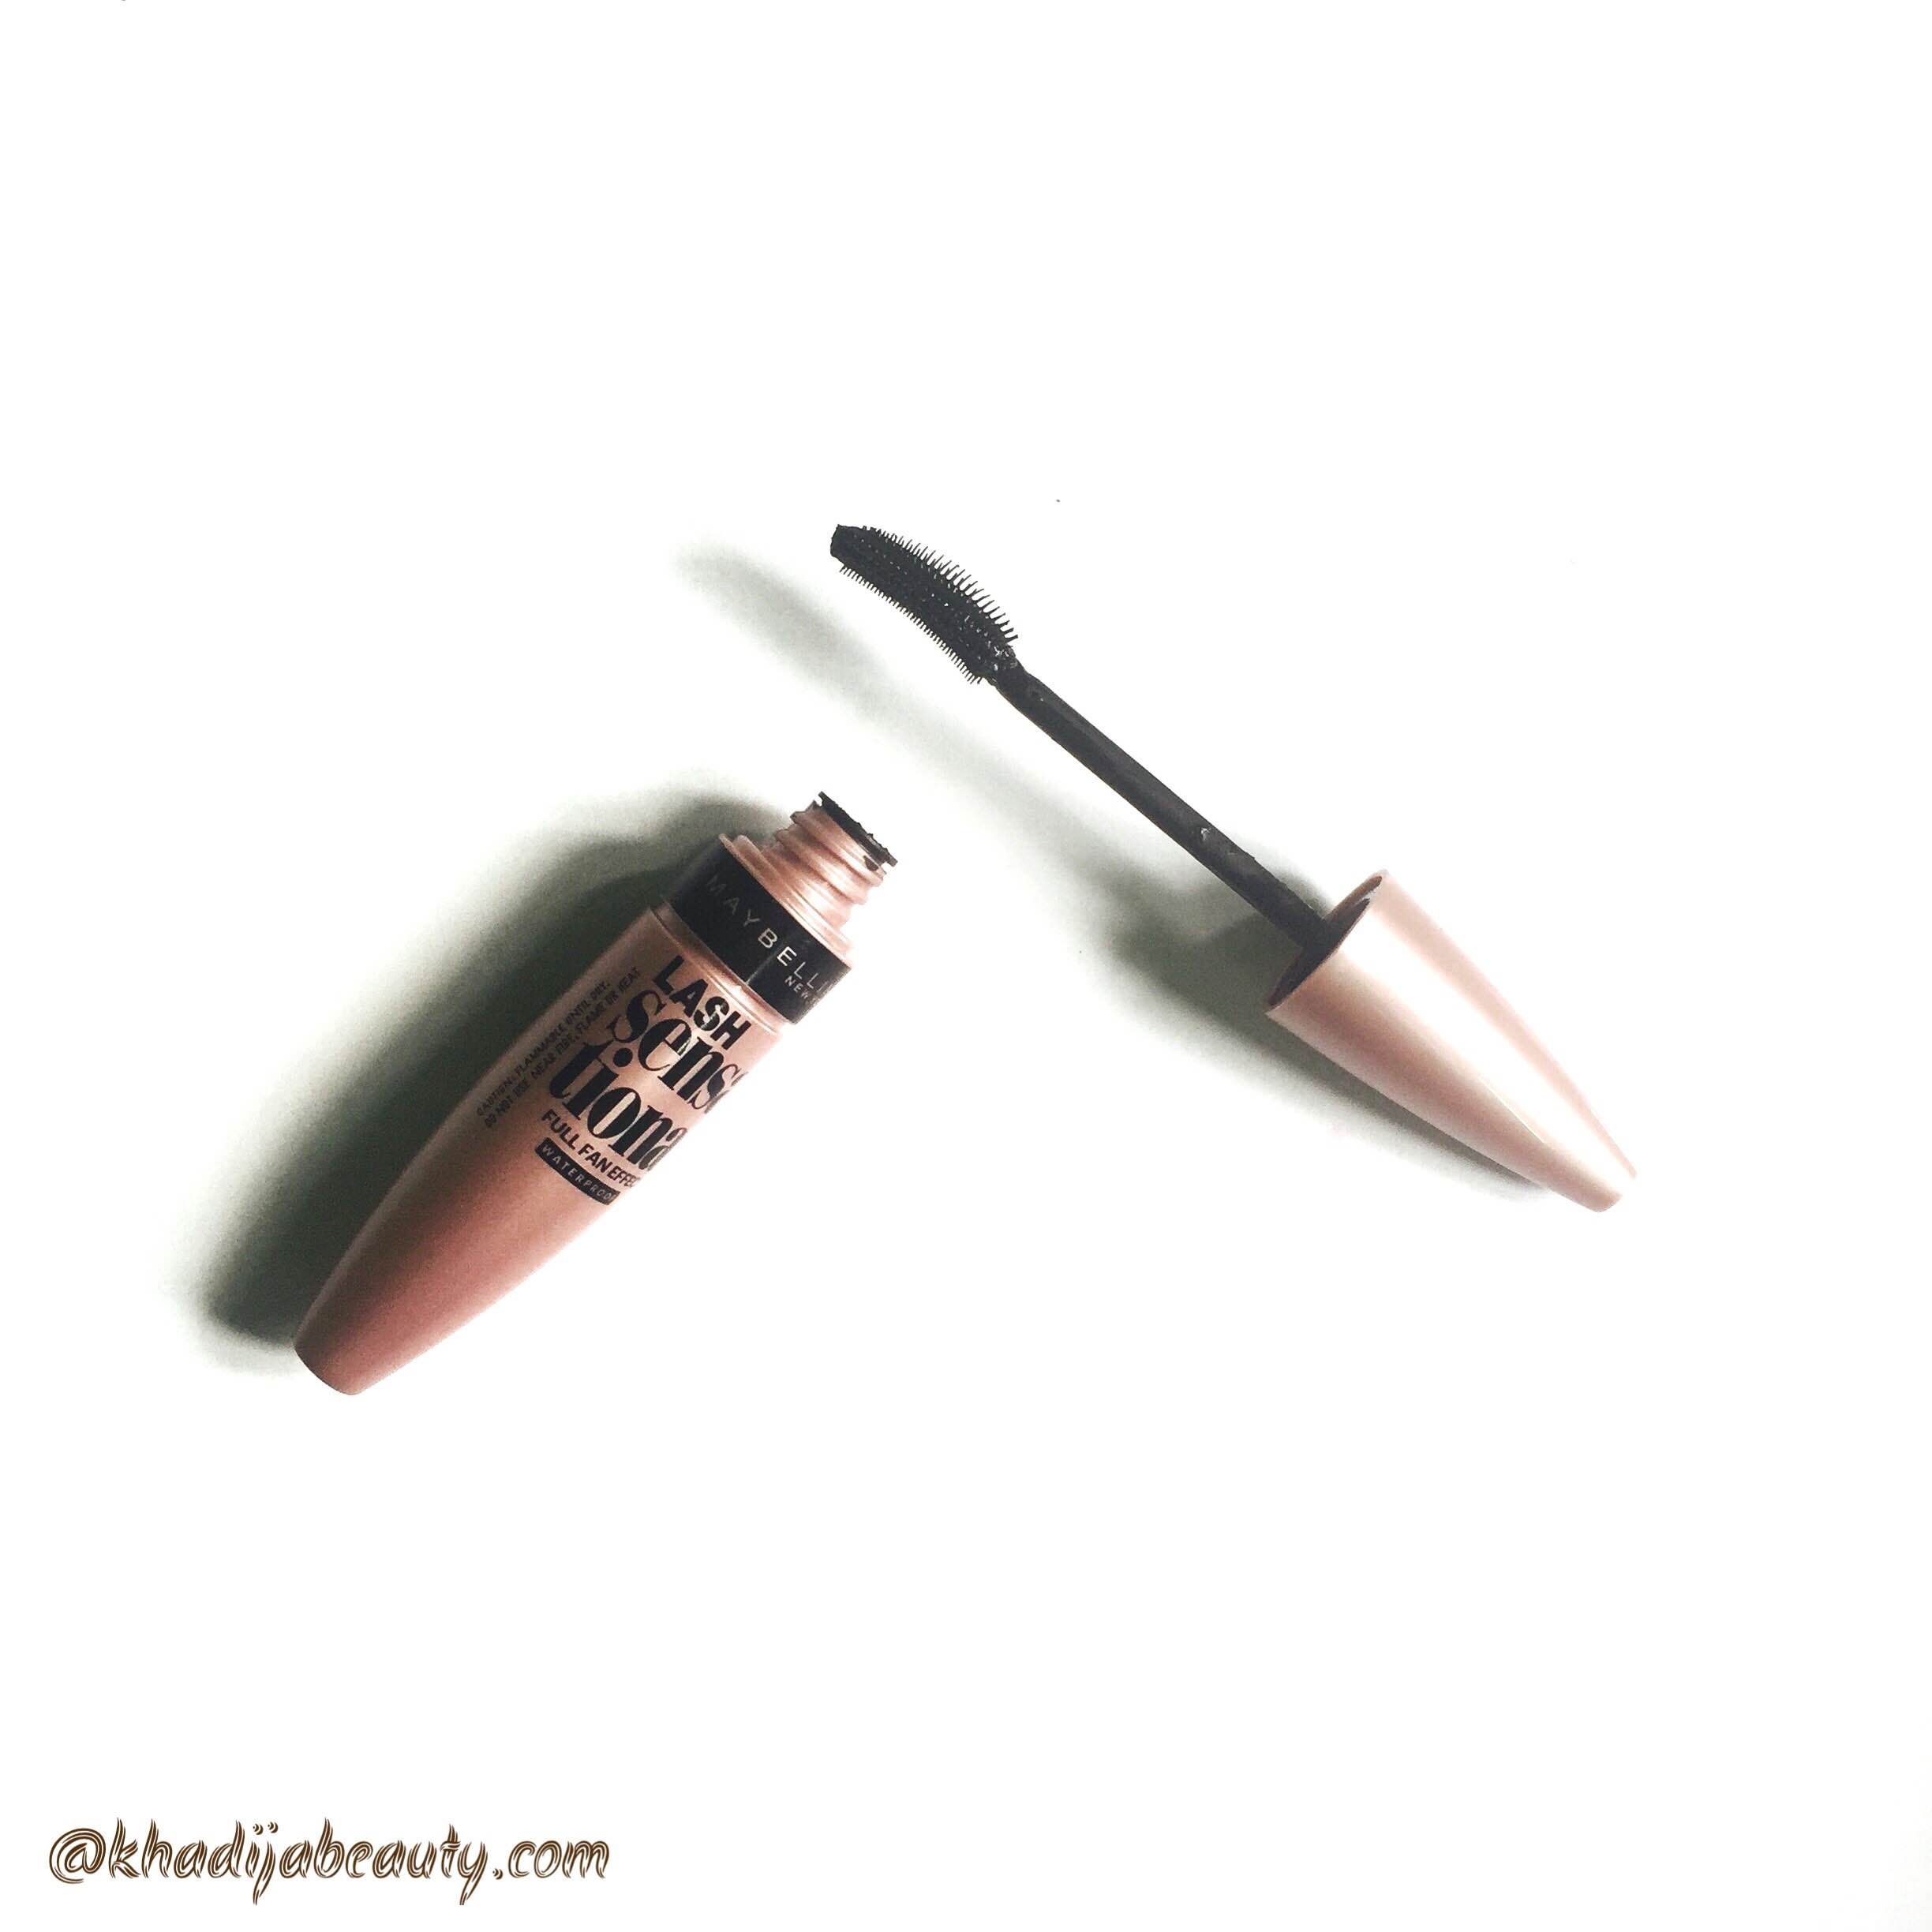 Maybelline New York Lash sensational waterproof mascara (6)